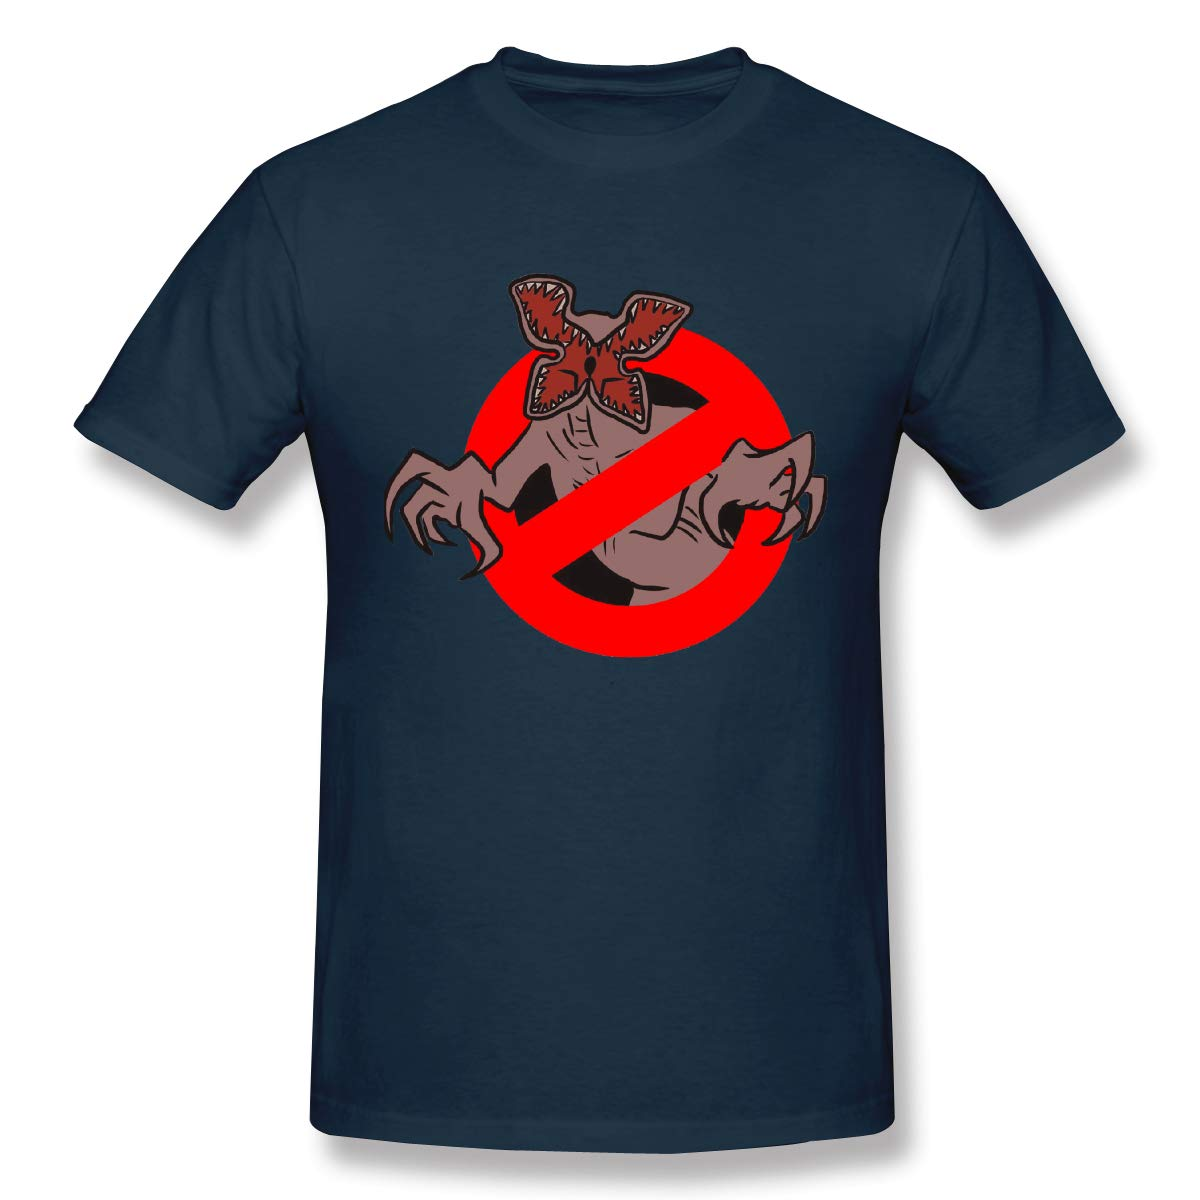 Gallagher Stop Demogorgon Busters Casual T Shirt Short Sleeve Tee For